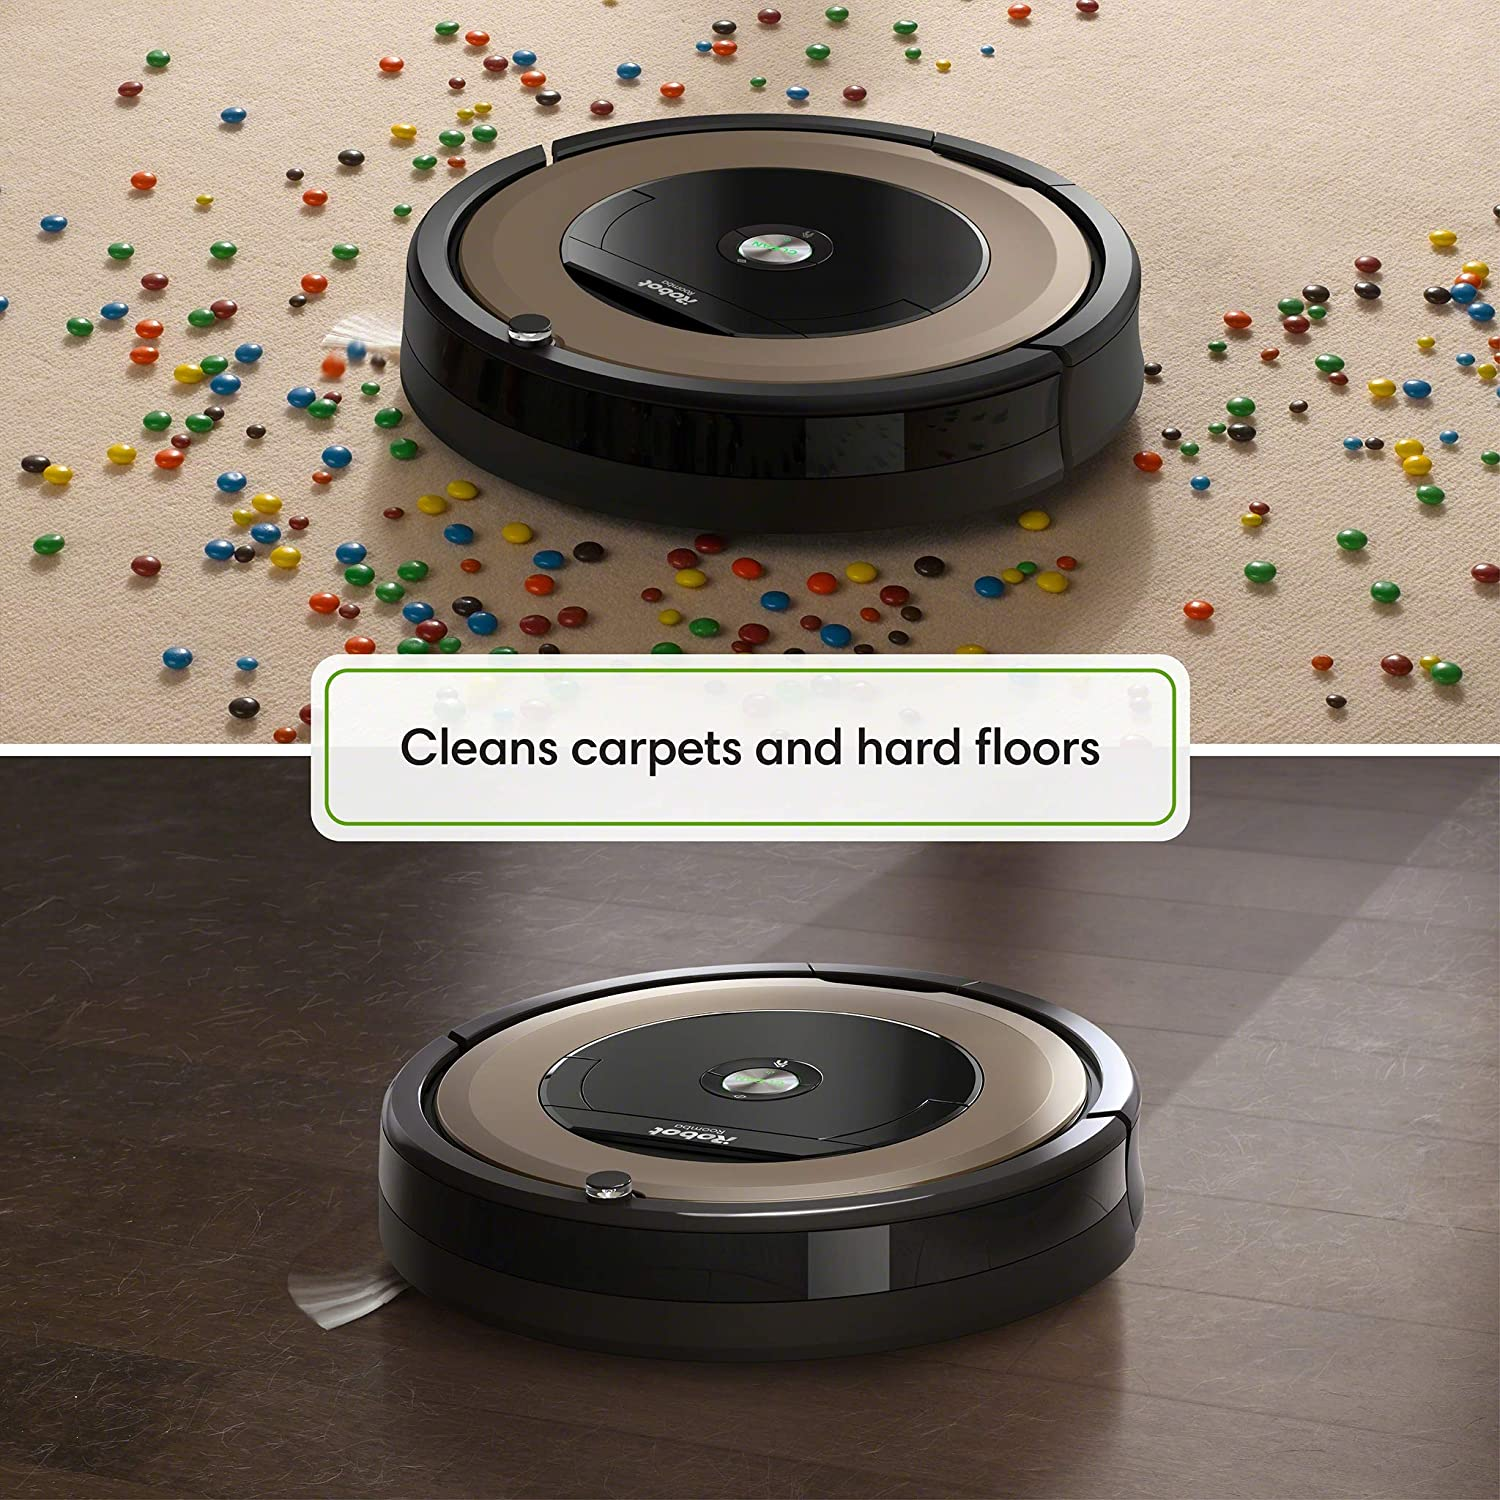 irobot 891 review